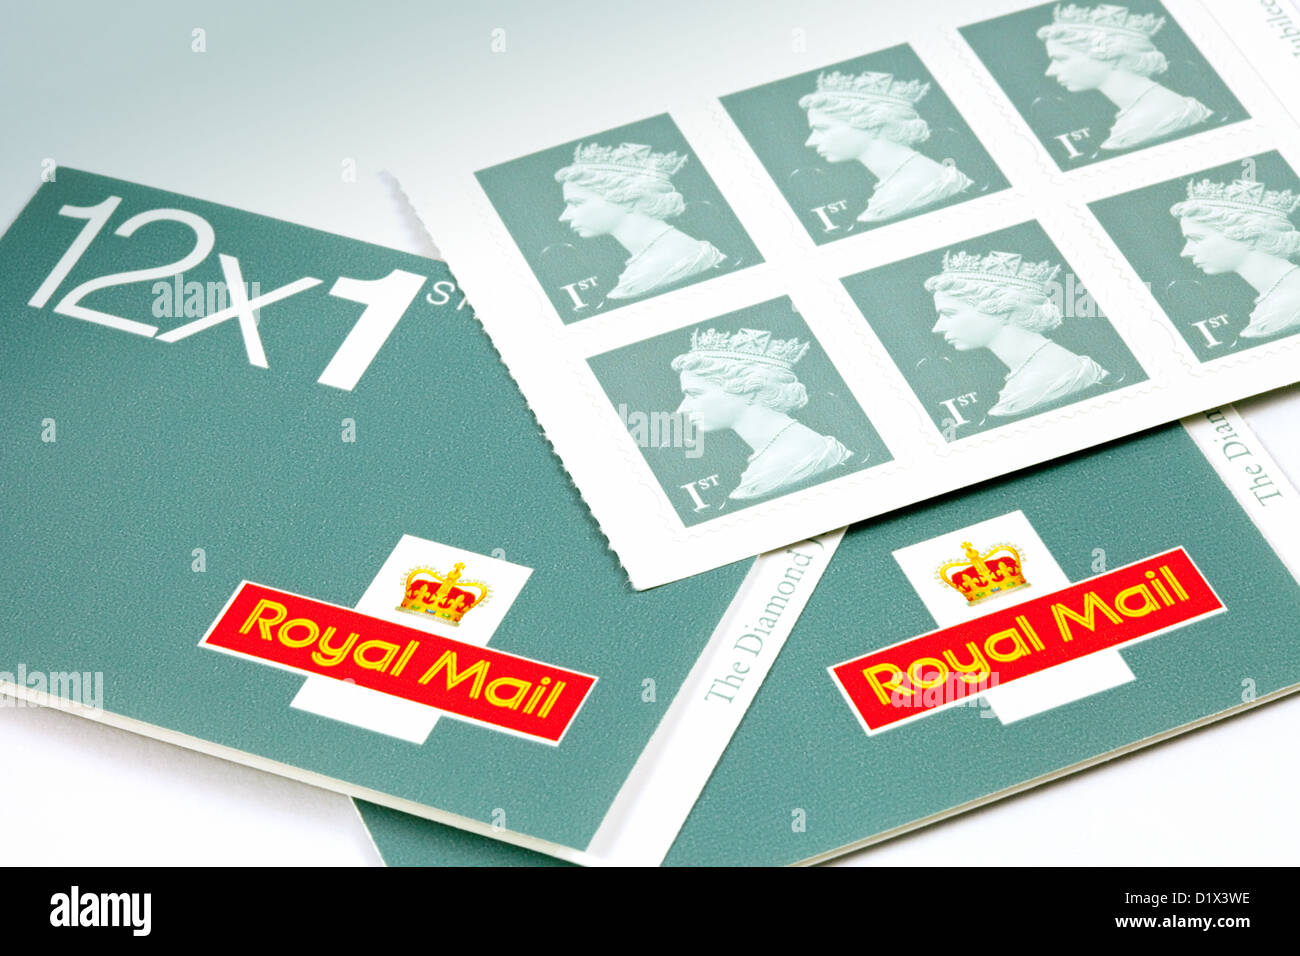 First class stamps for letter postage, new 2013 colour, england UK - Stock Image